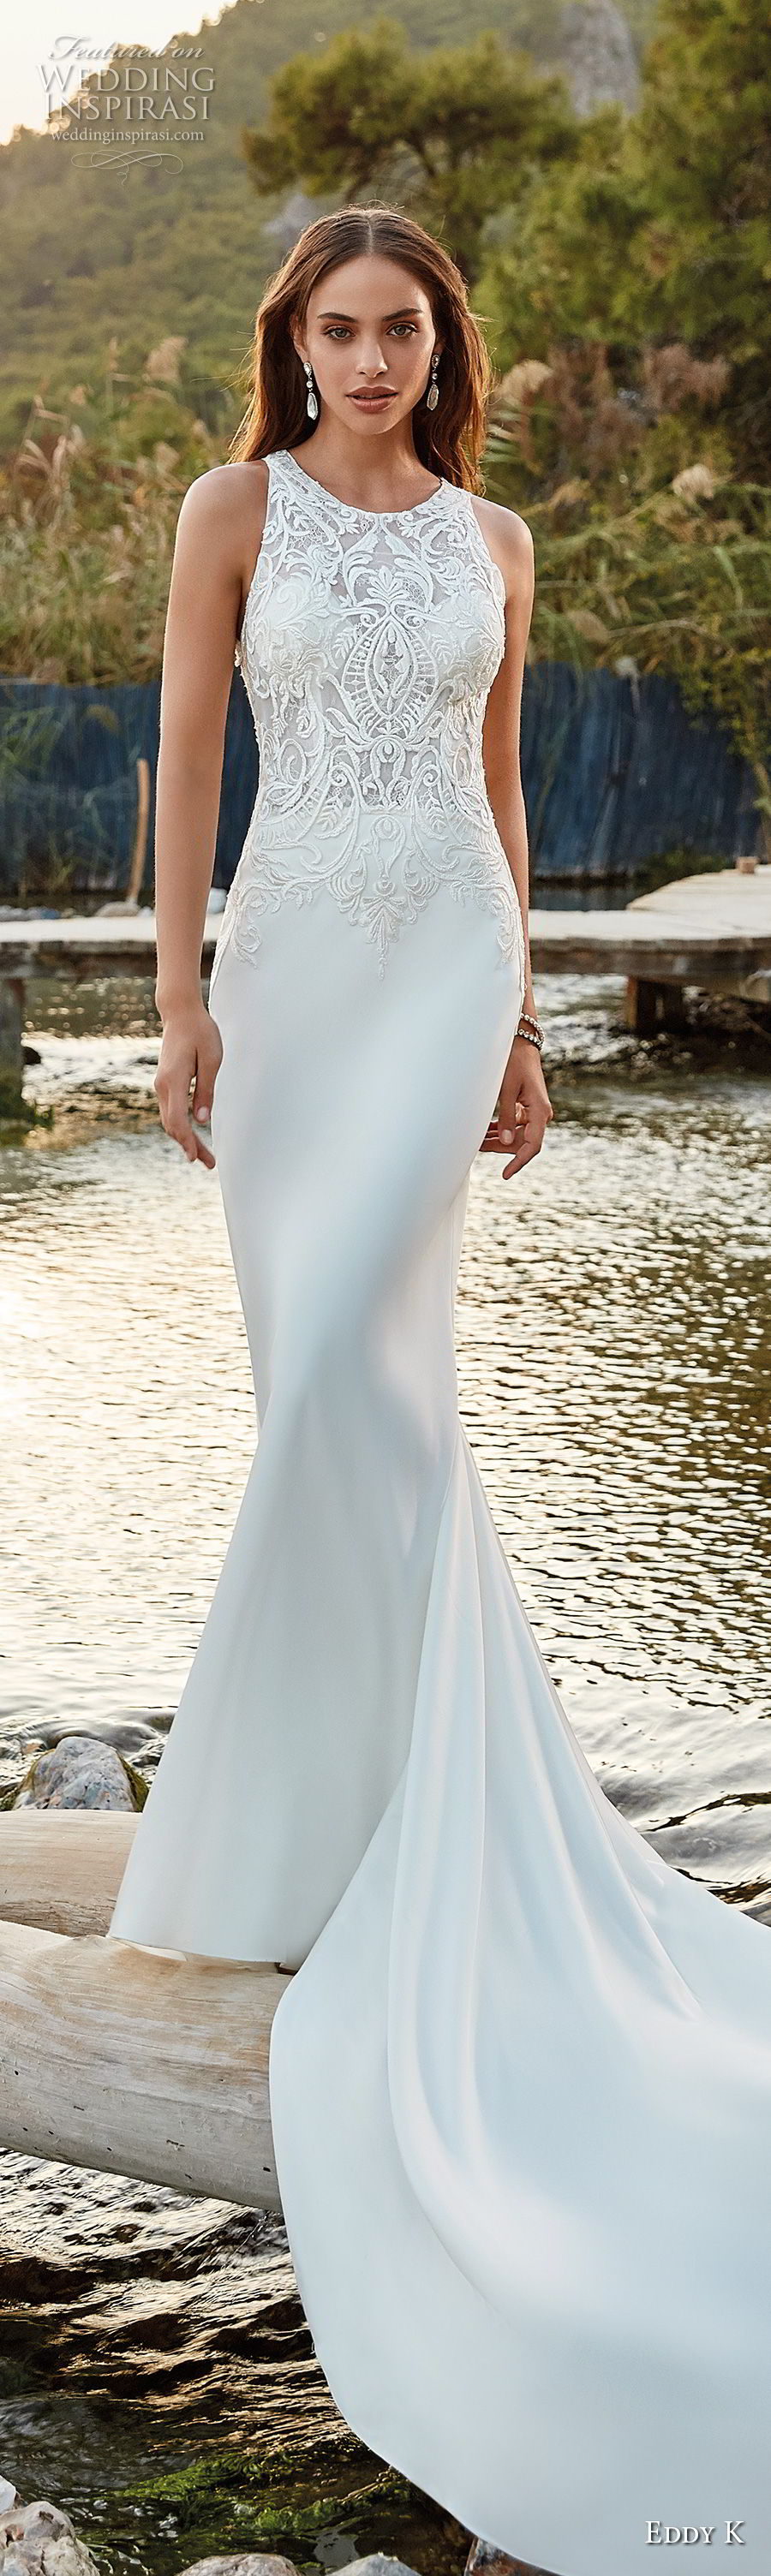 Eddy K. Dreams 2019 Wedding Dresses | Wedding Inspirasi